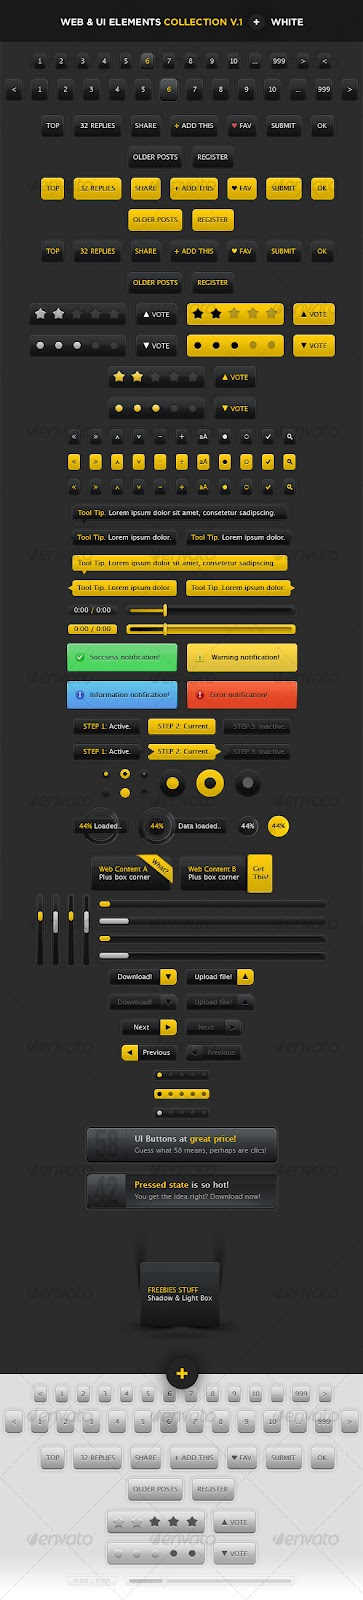 User Interface Elements for Web